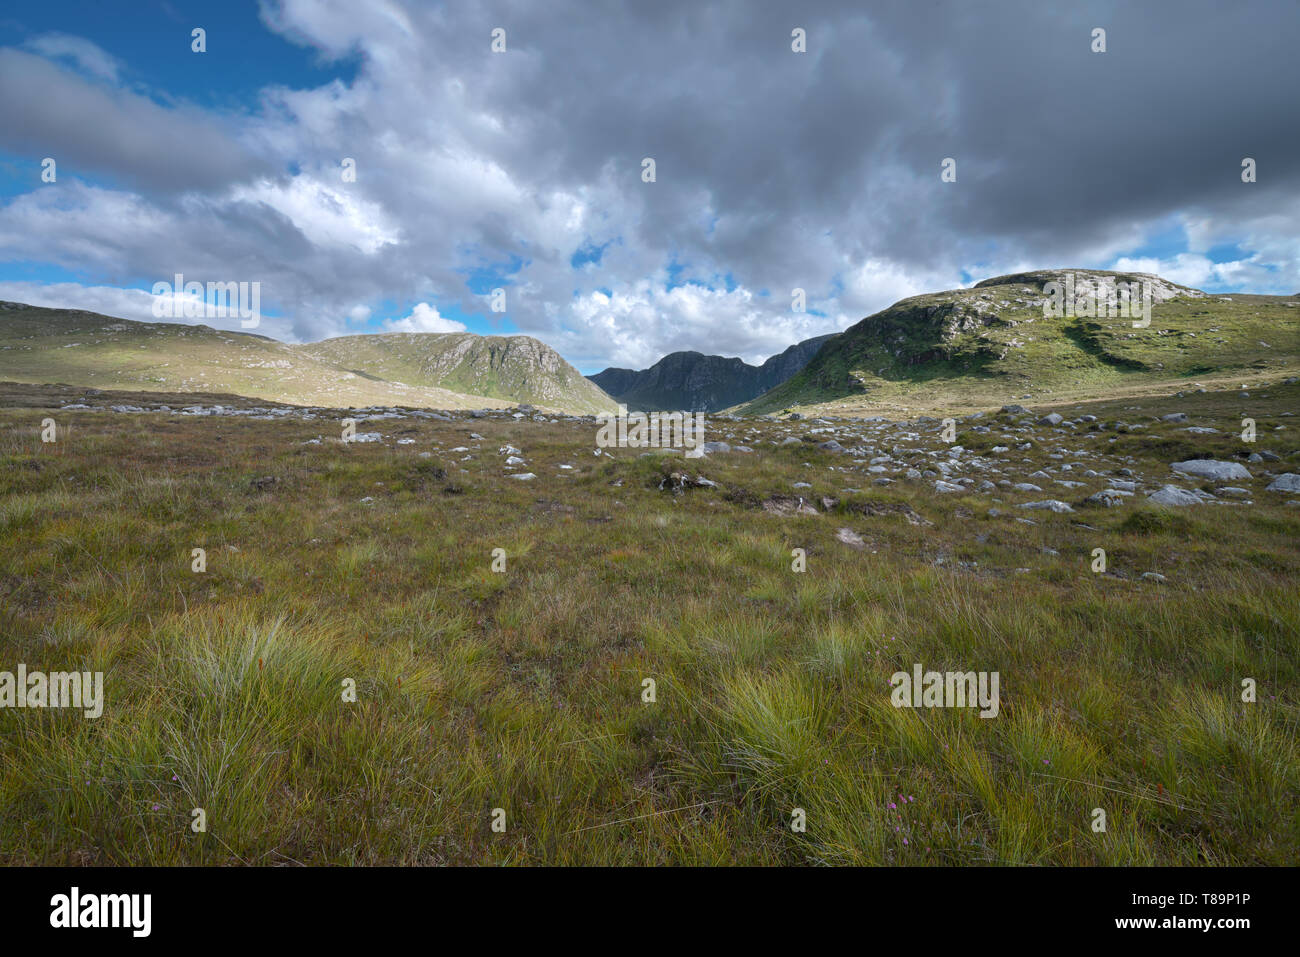 The Poisoned Glen, at the foot of Mount Errigal in Dunlewey, Donegal, Ireland - Stock Image